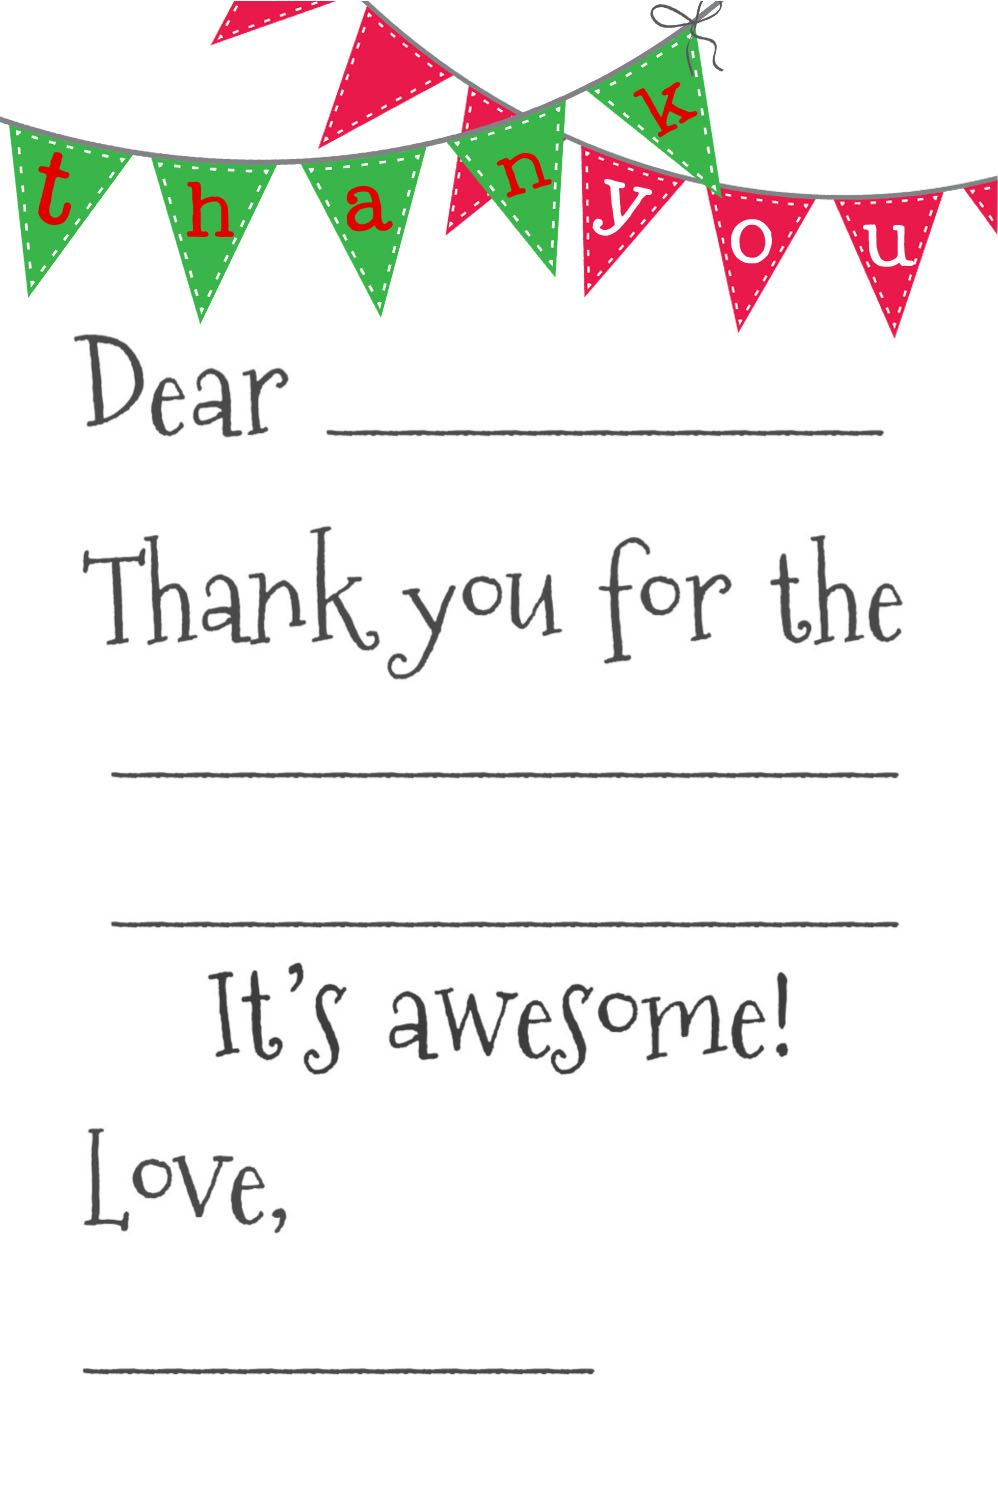 Free Fill In The Blank Thank You Cards Babble Printable Thank You Cards Thank You Card Template Thank You Card Wording